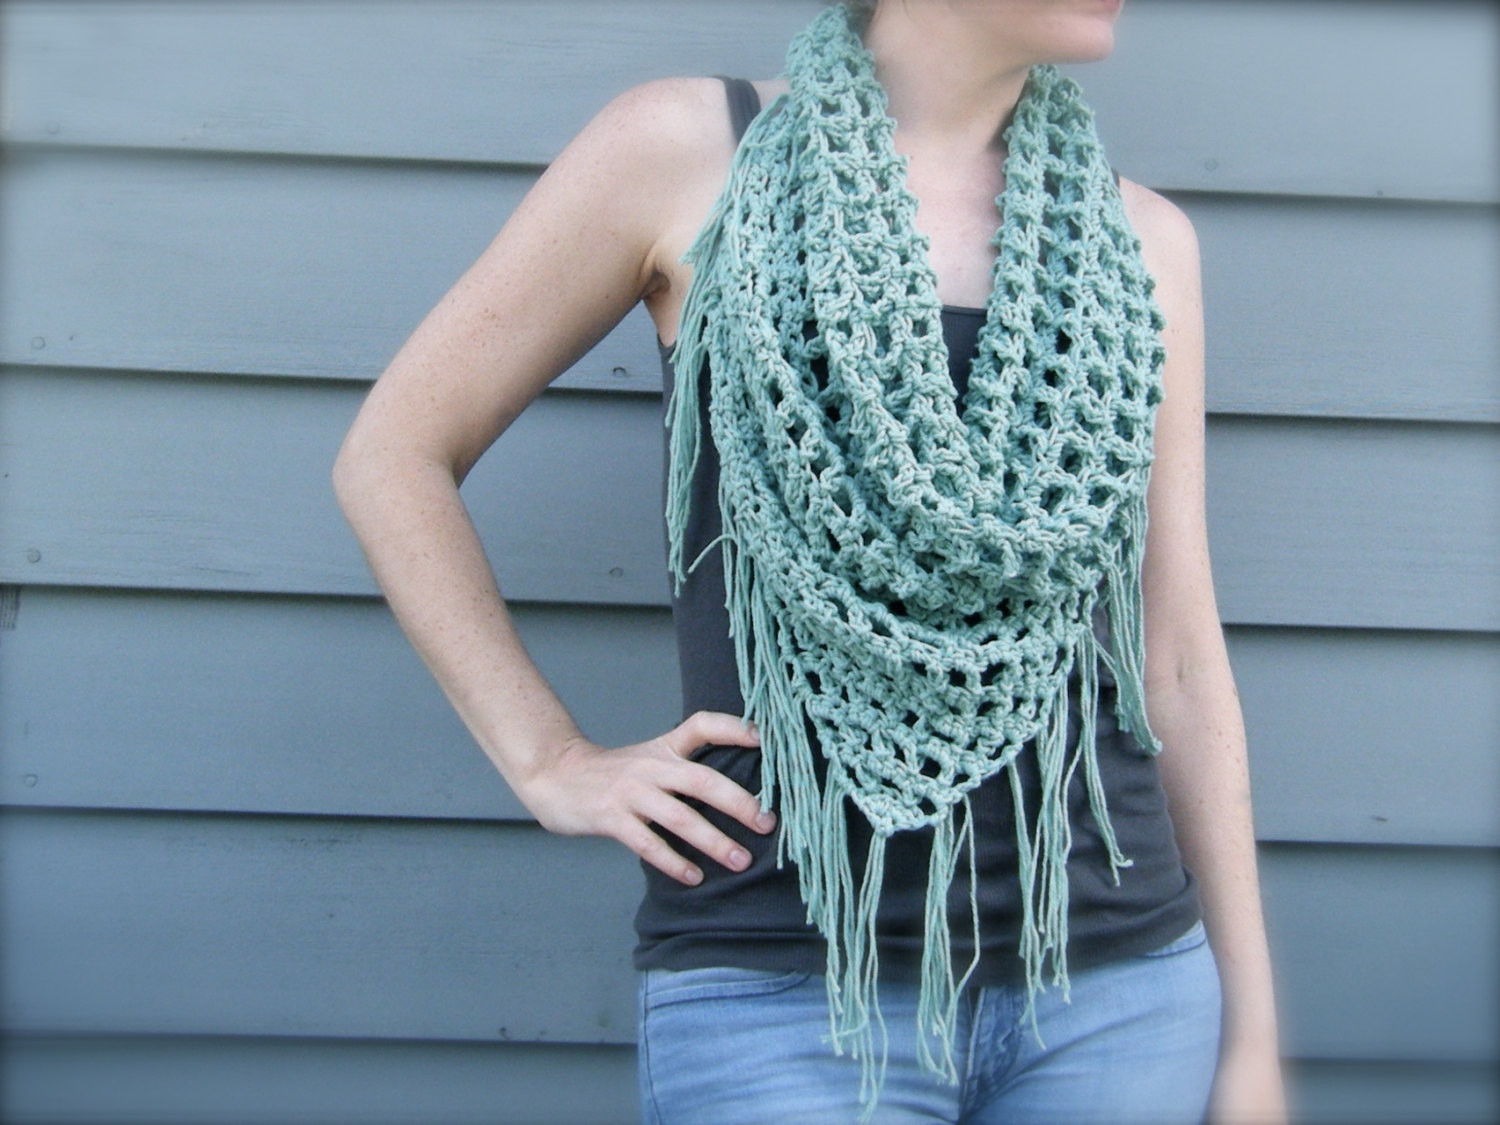 Crochet Cowl Scarf Inspirational Crochet Fringe Cowl Neck Scarf Pattern Of Awesome 42 Pics Crochet Cowl Scarf